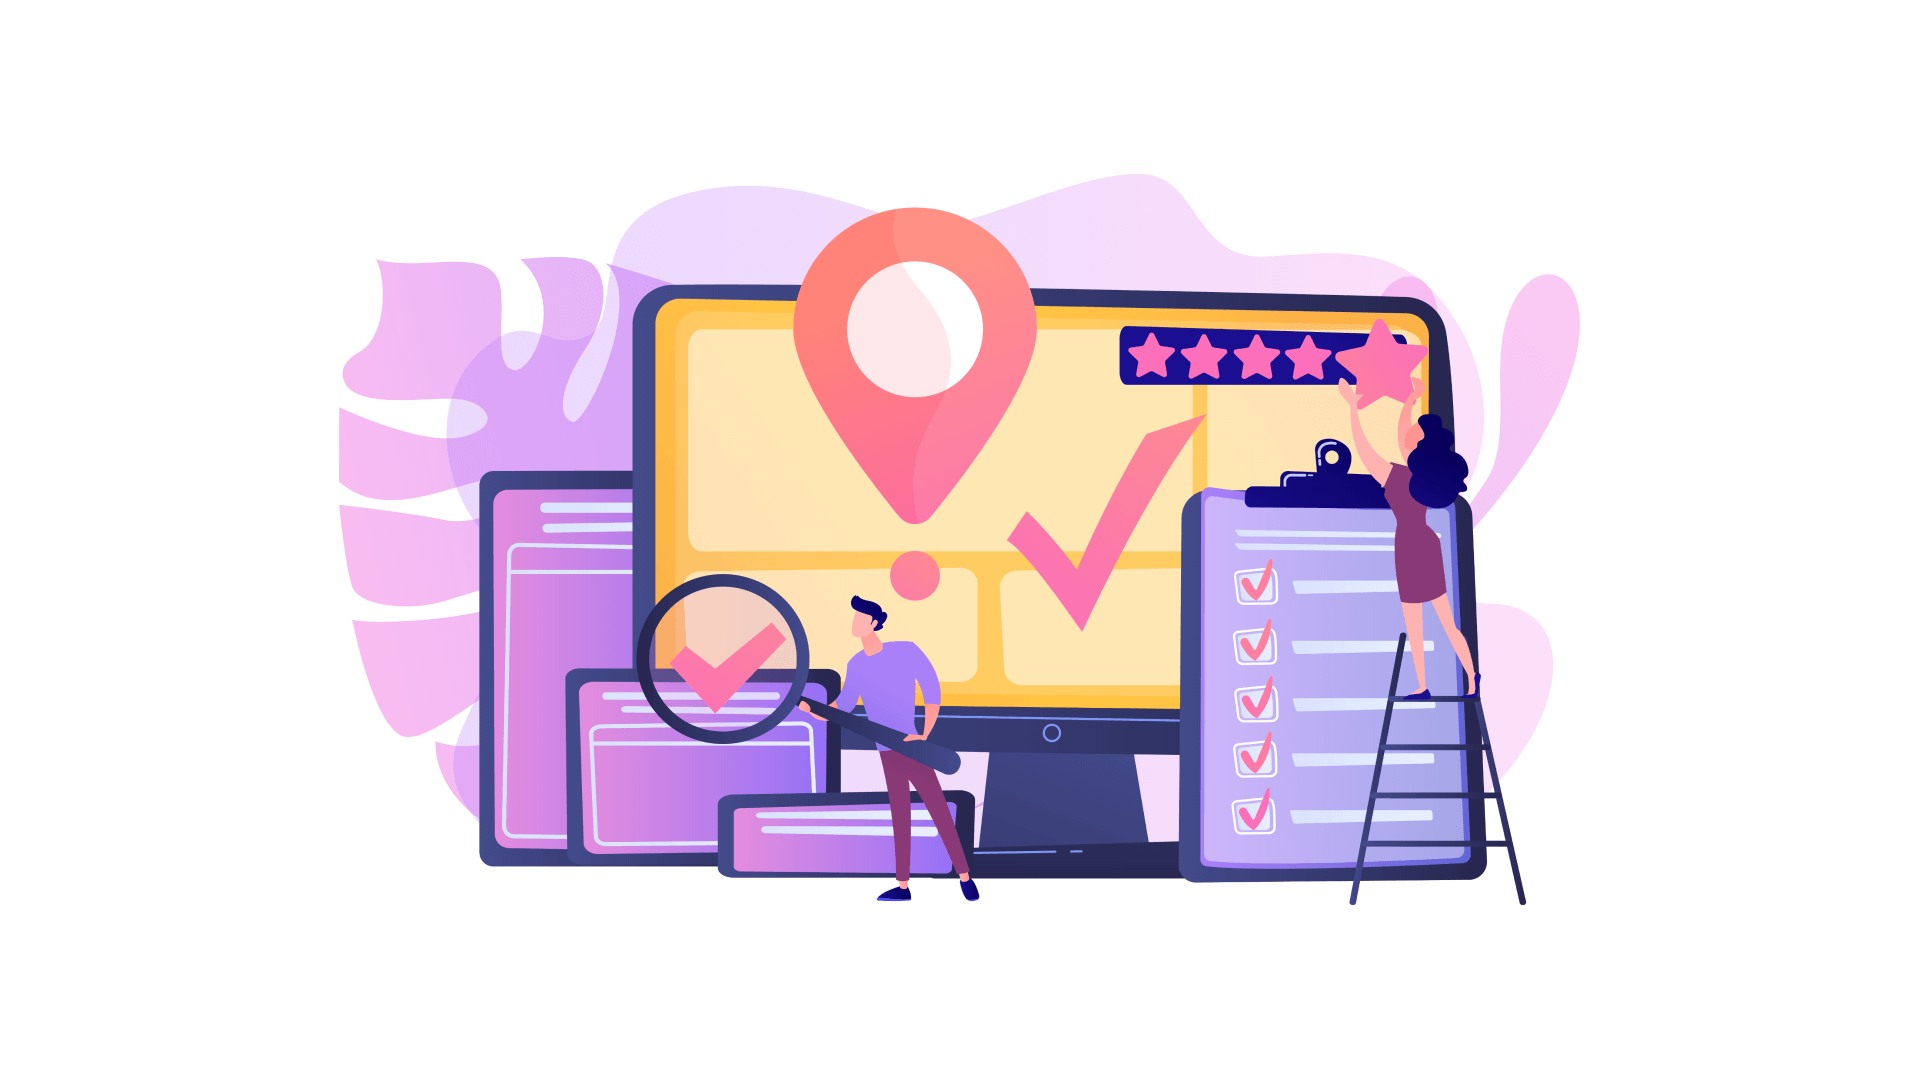 Steps to build a geolocation app: start with planning, research the market, and find a trusted software development partner.